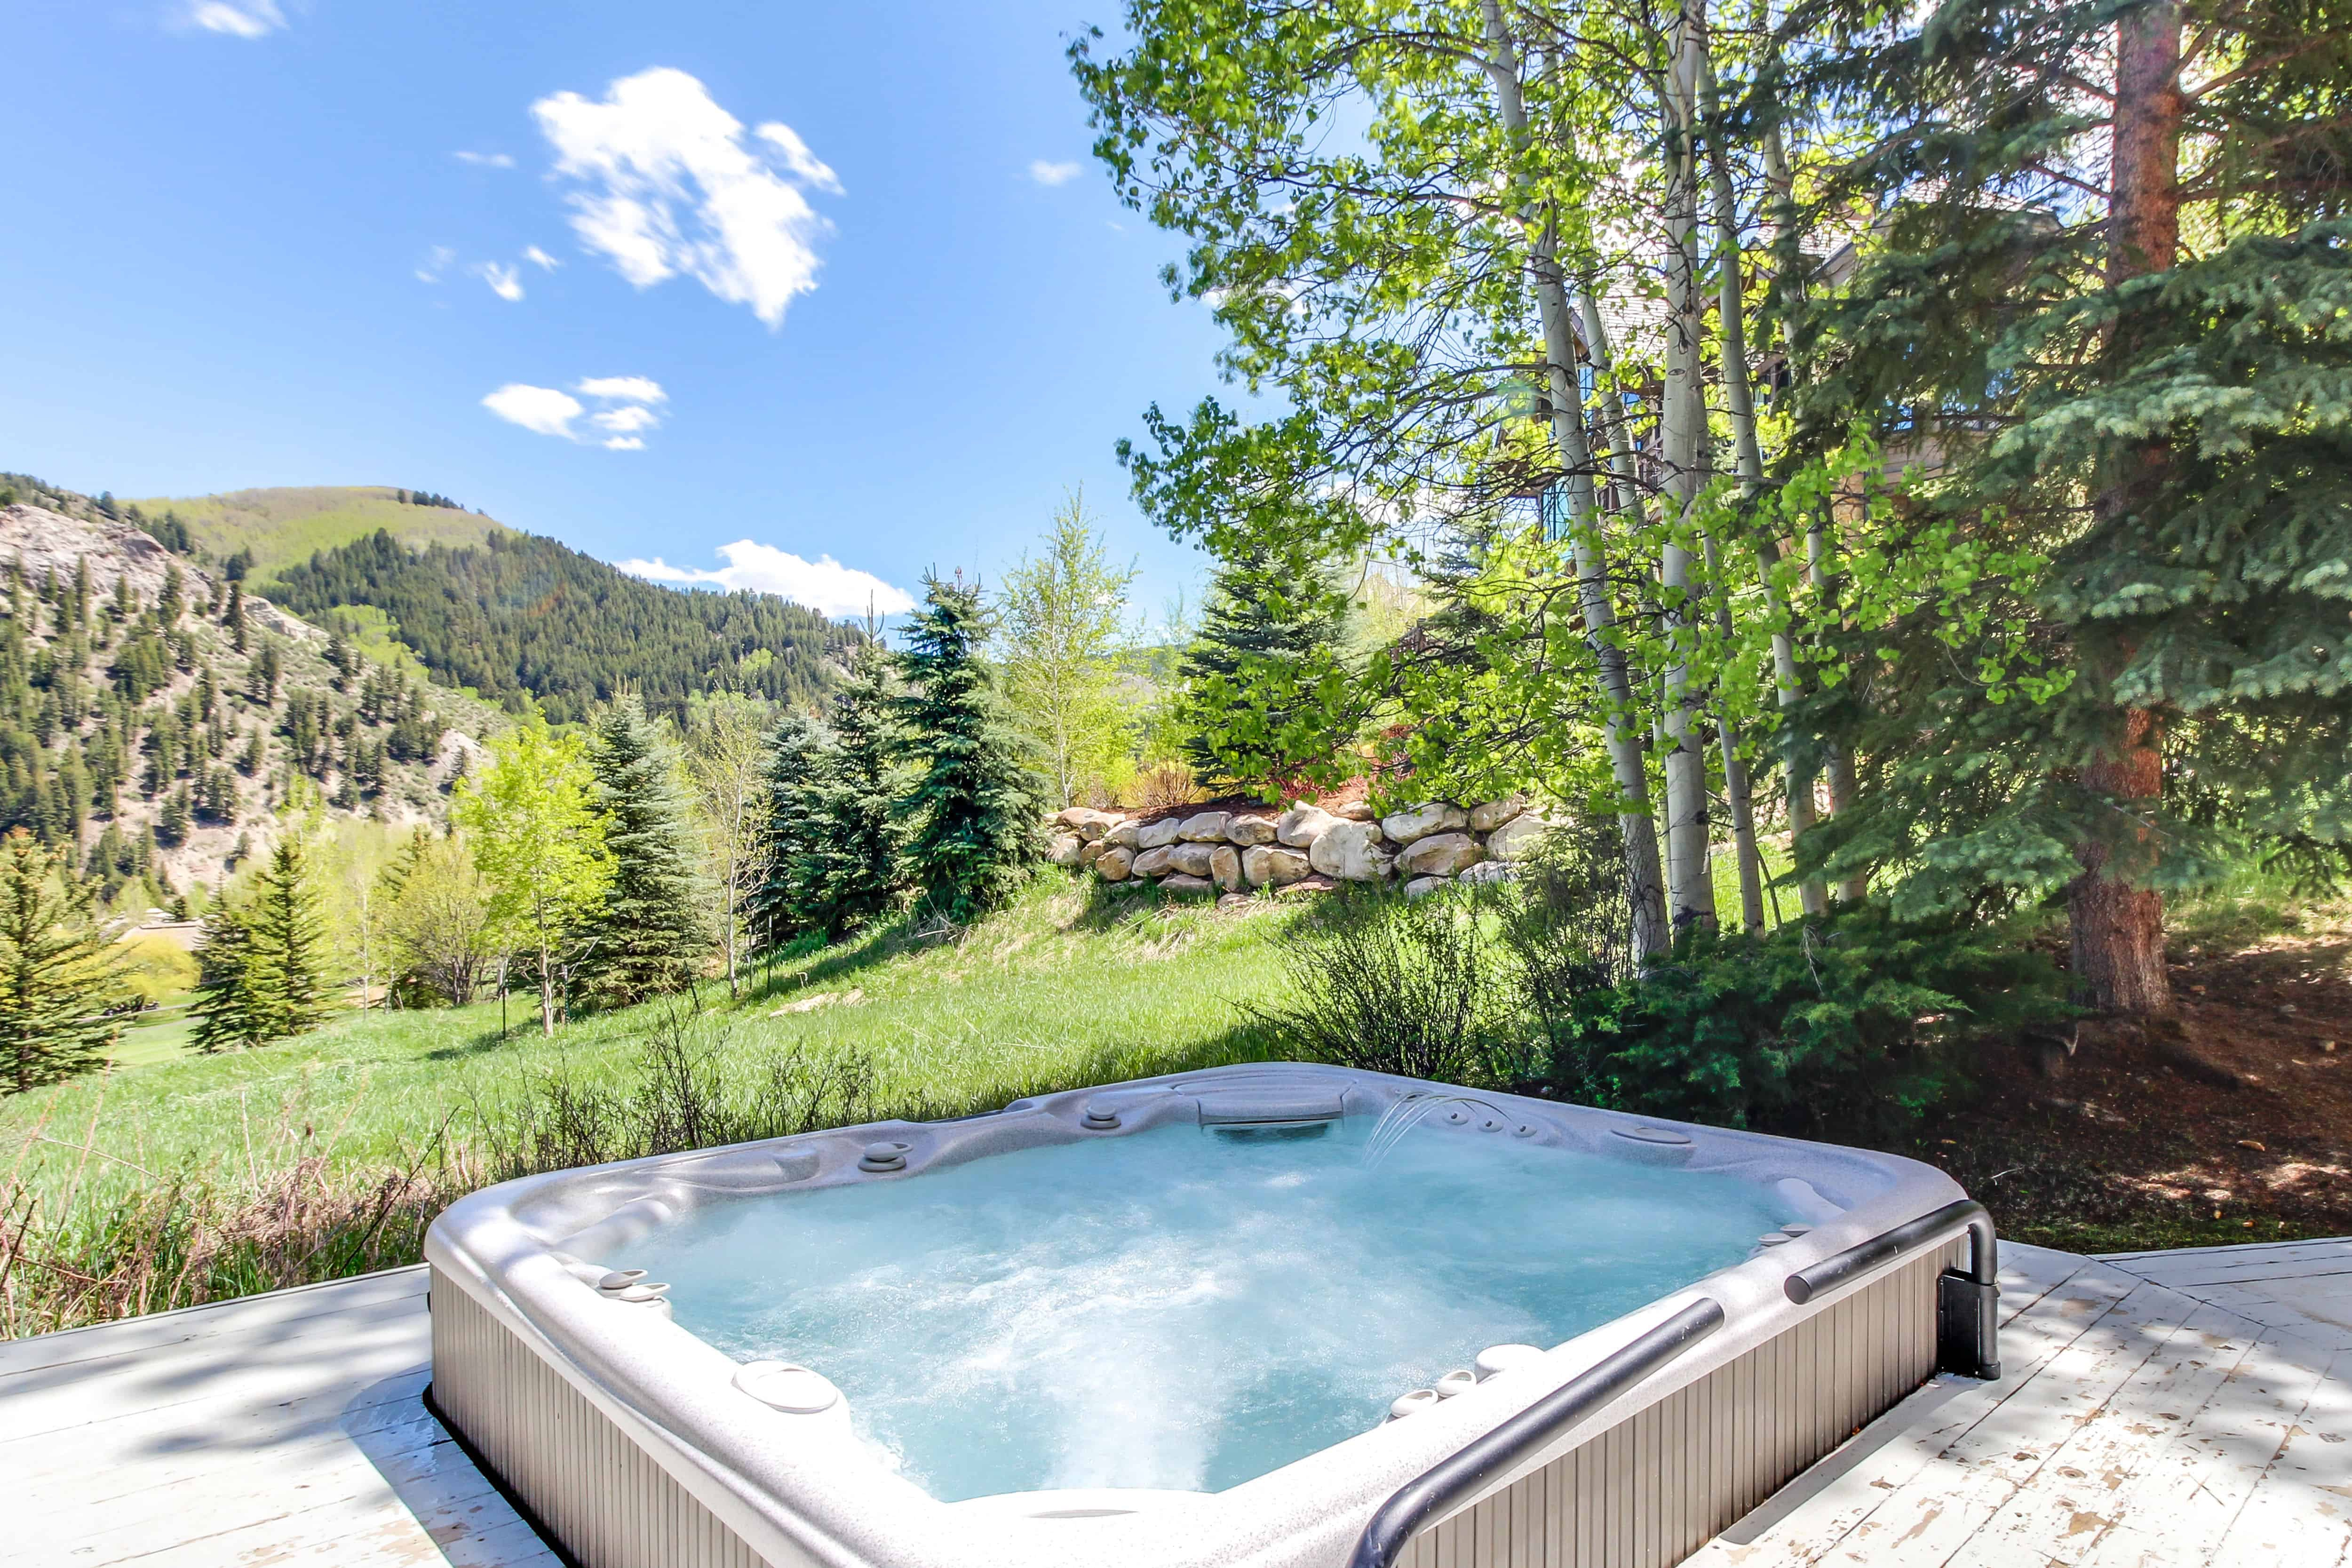 a hot tub on a patio in the mountains